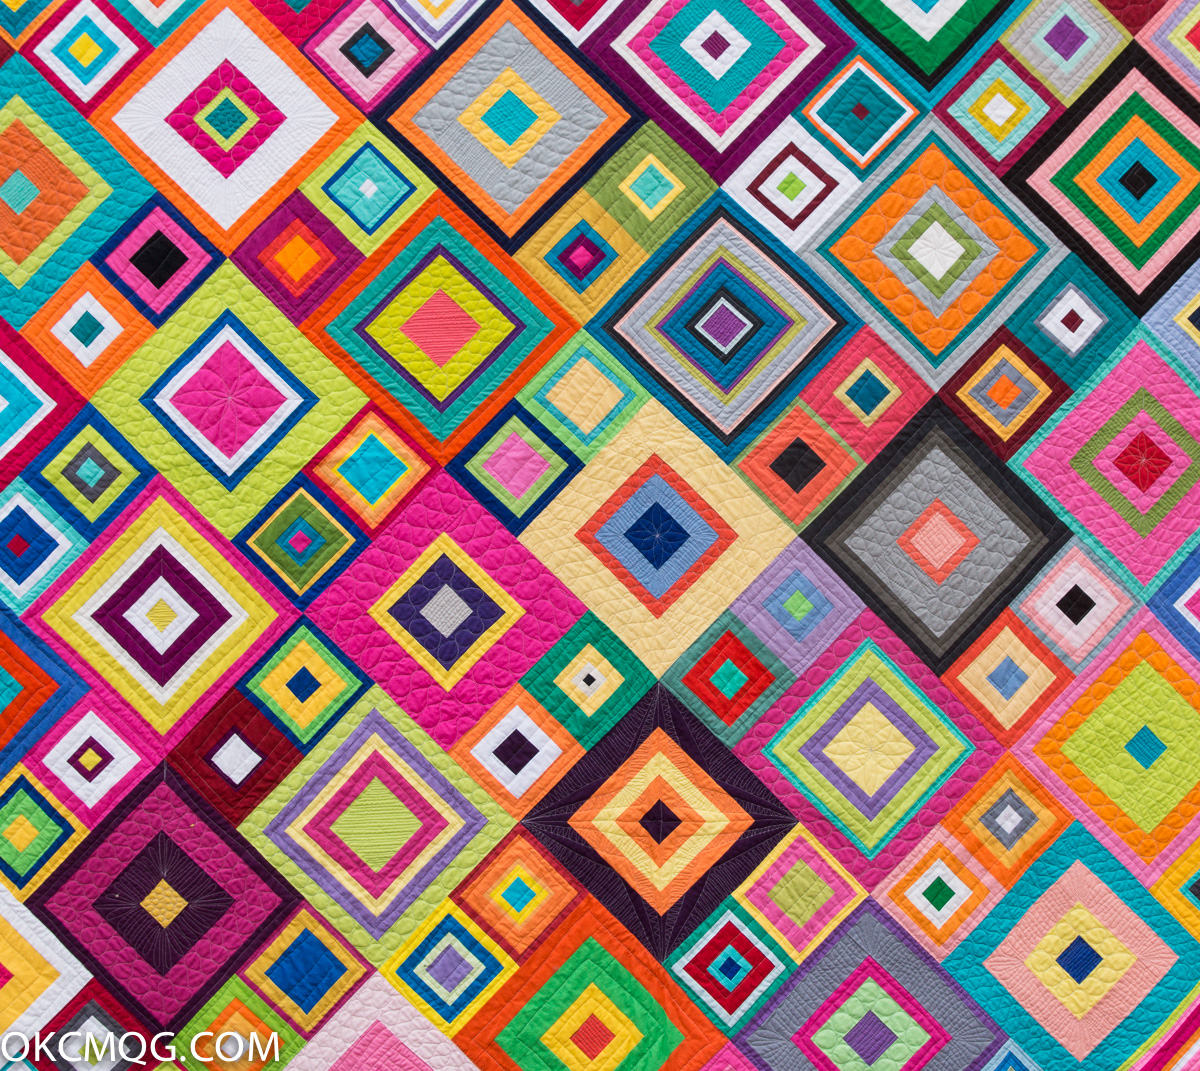 Okc modern quilters 2016 charity raffle quilt hip to be for Modern house quilts